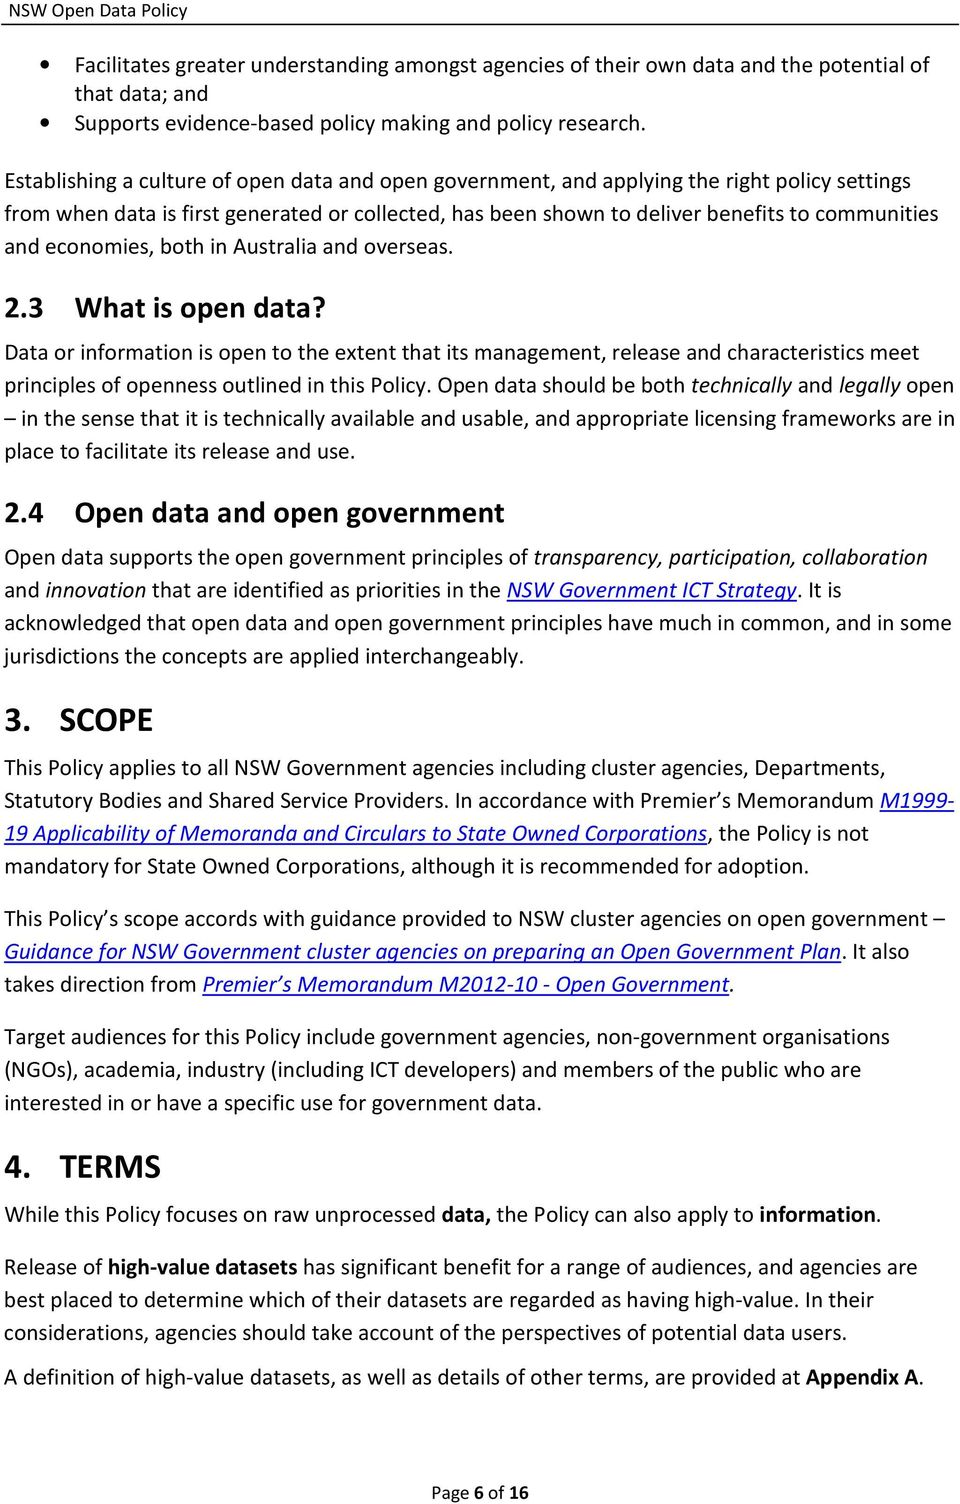 economies, both in Australia and overseas. 2.3 What is open data?